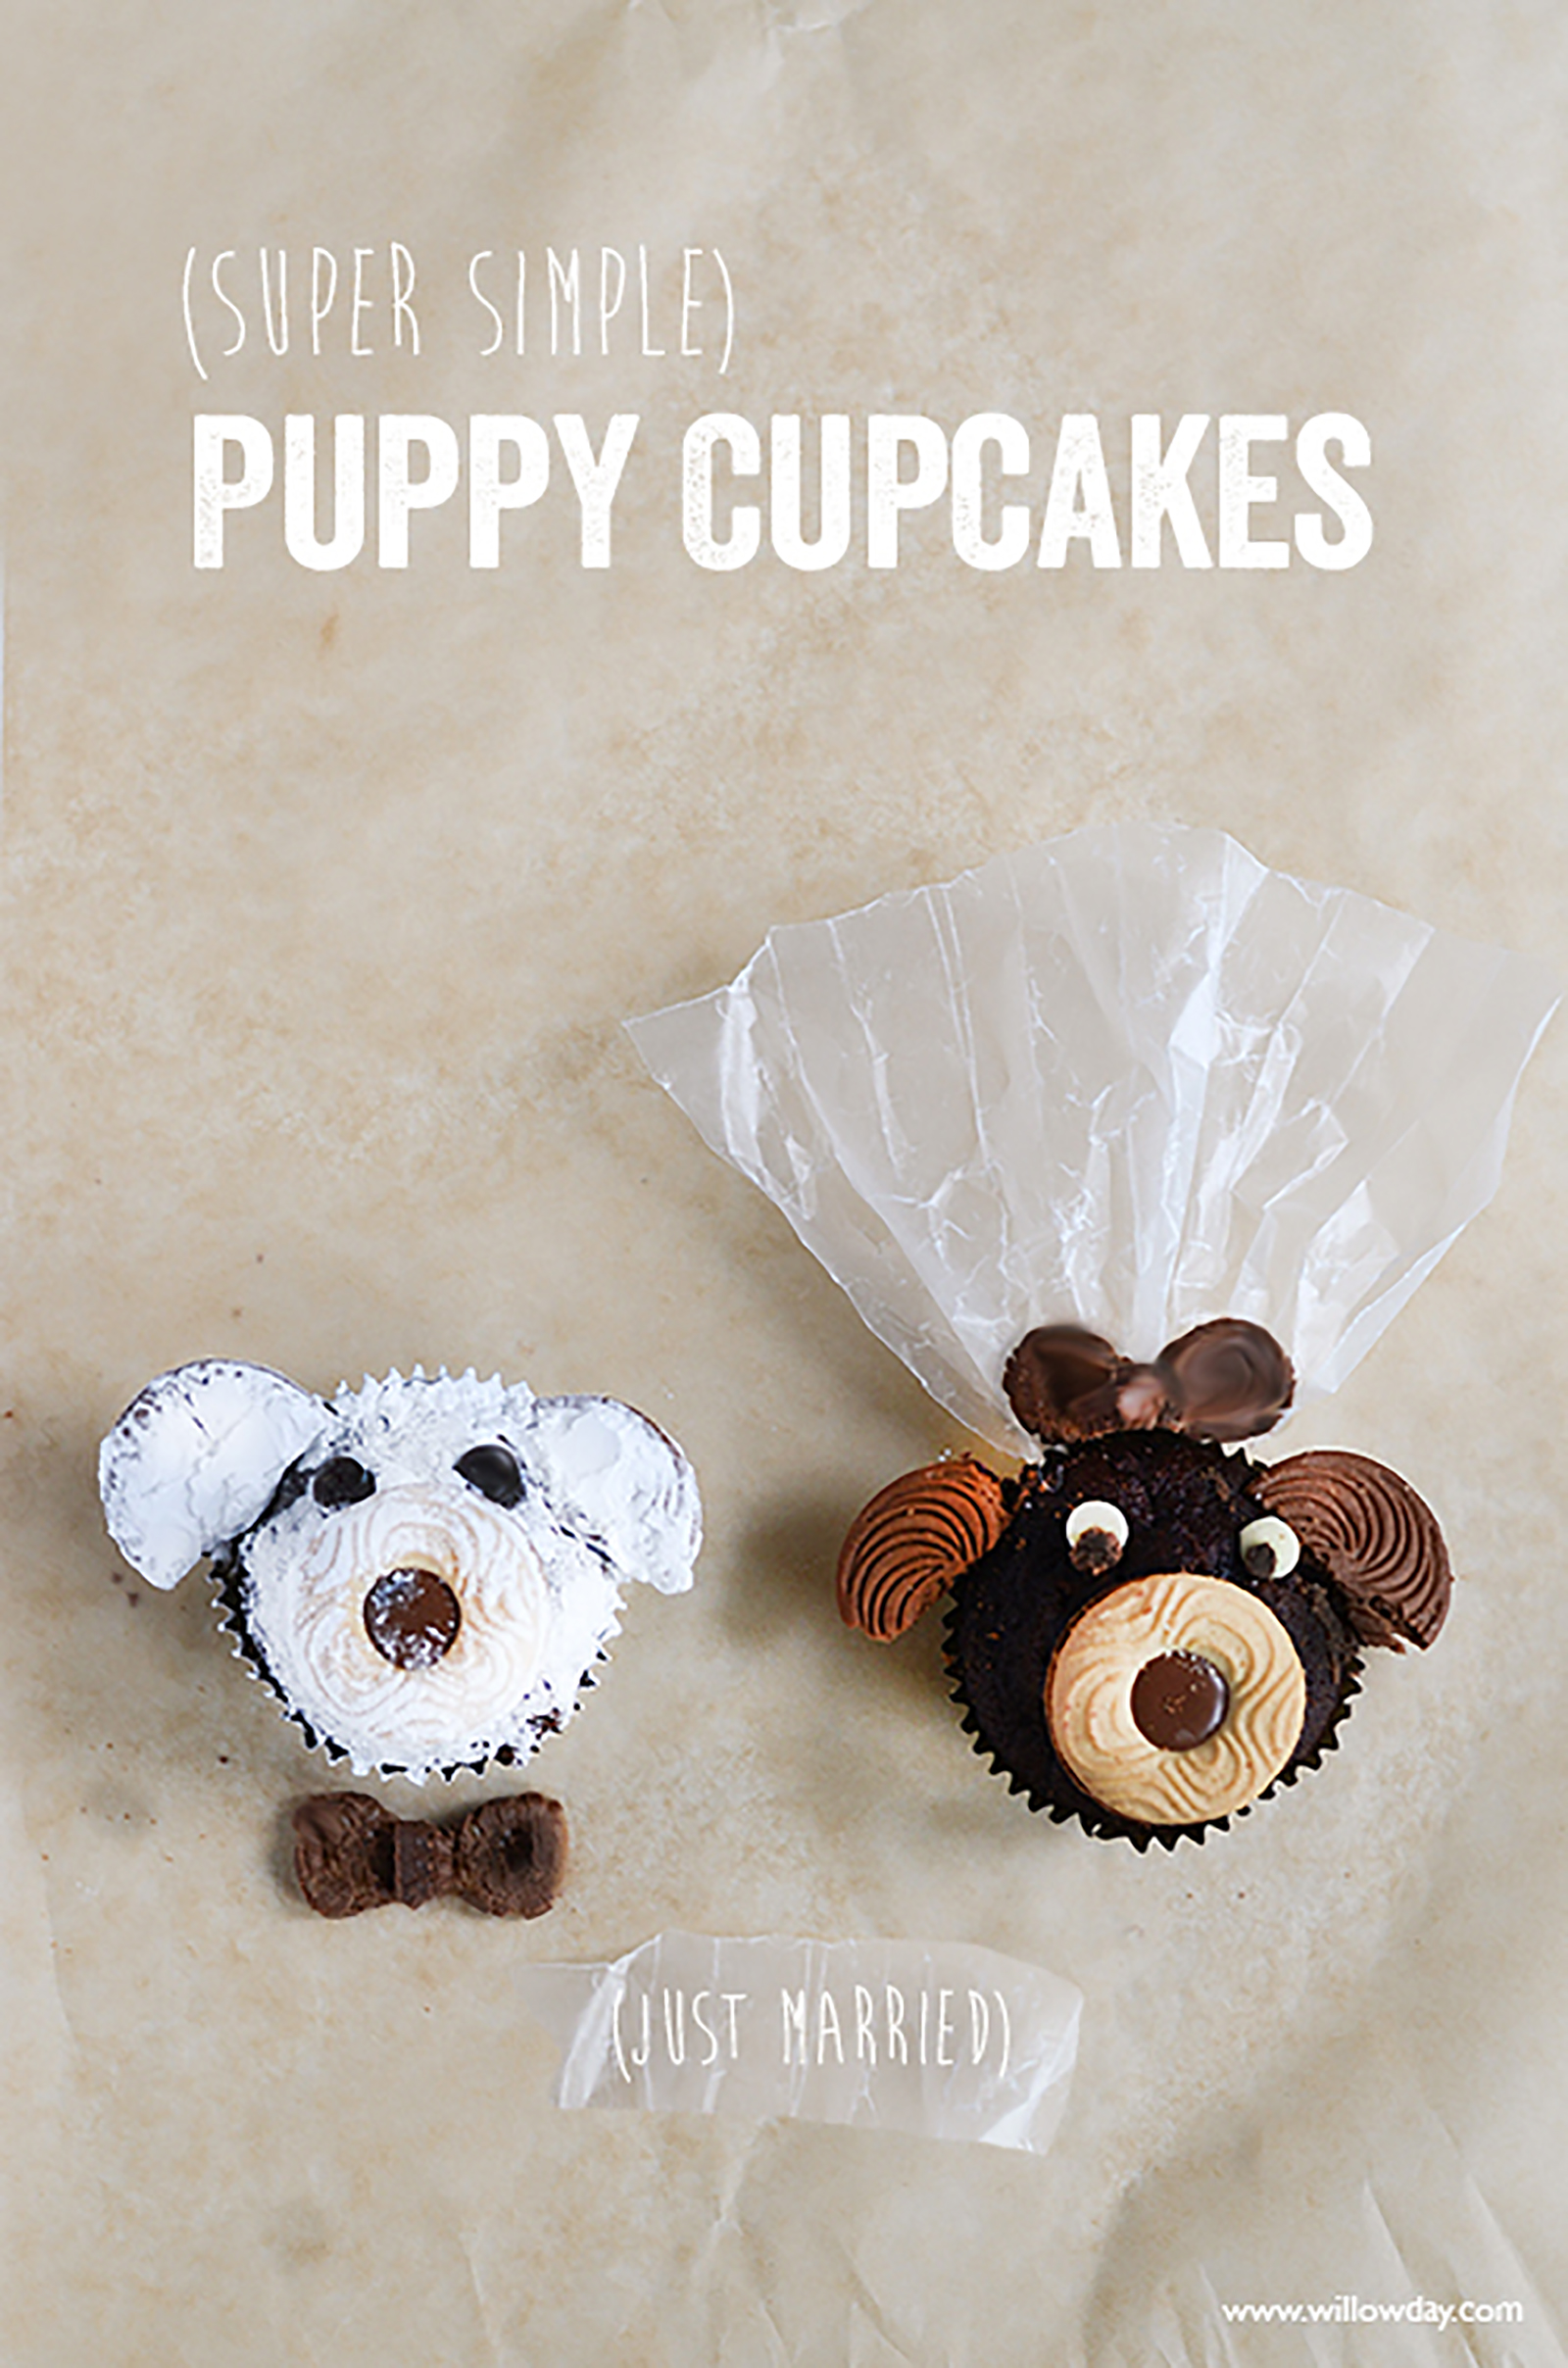 1600 Dog-Cup-Cakes-as-Couple500TXT